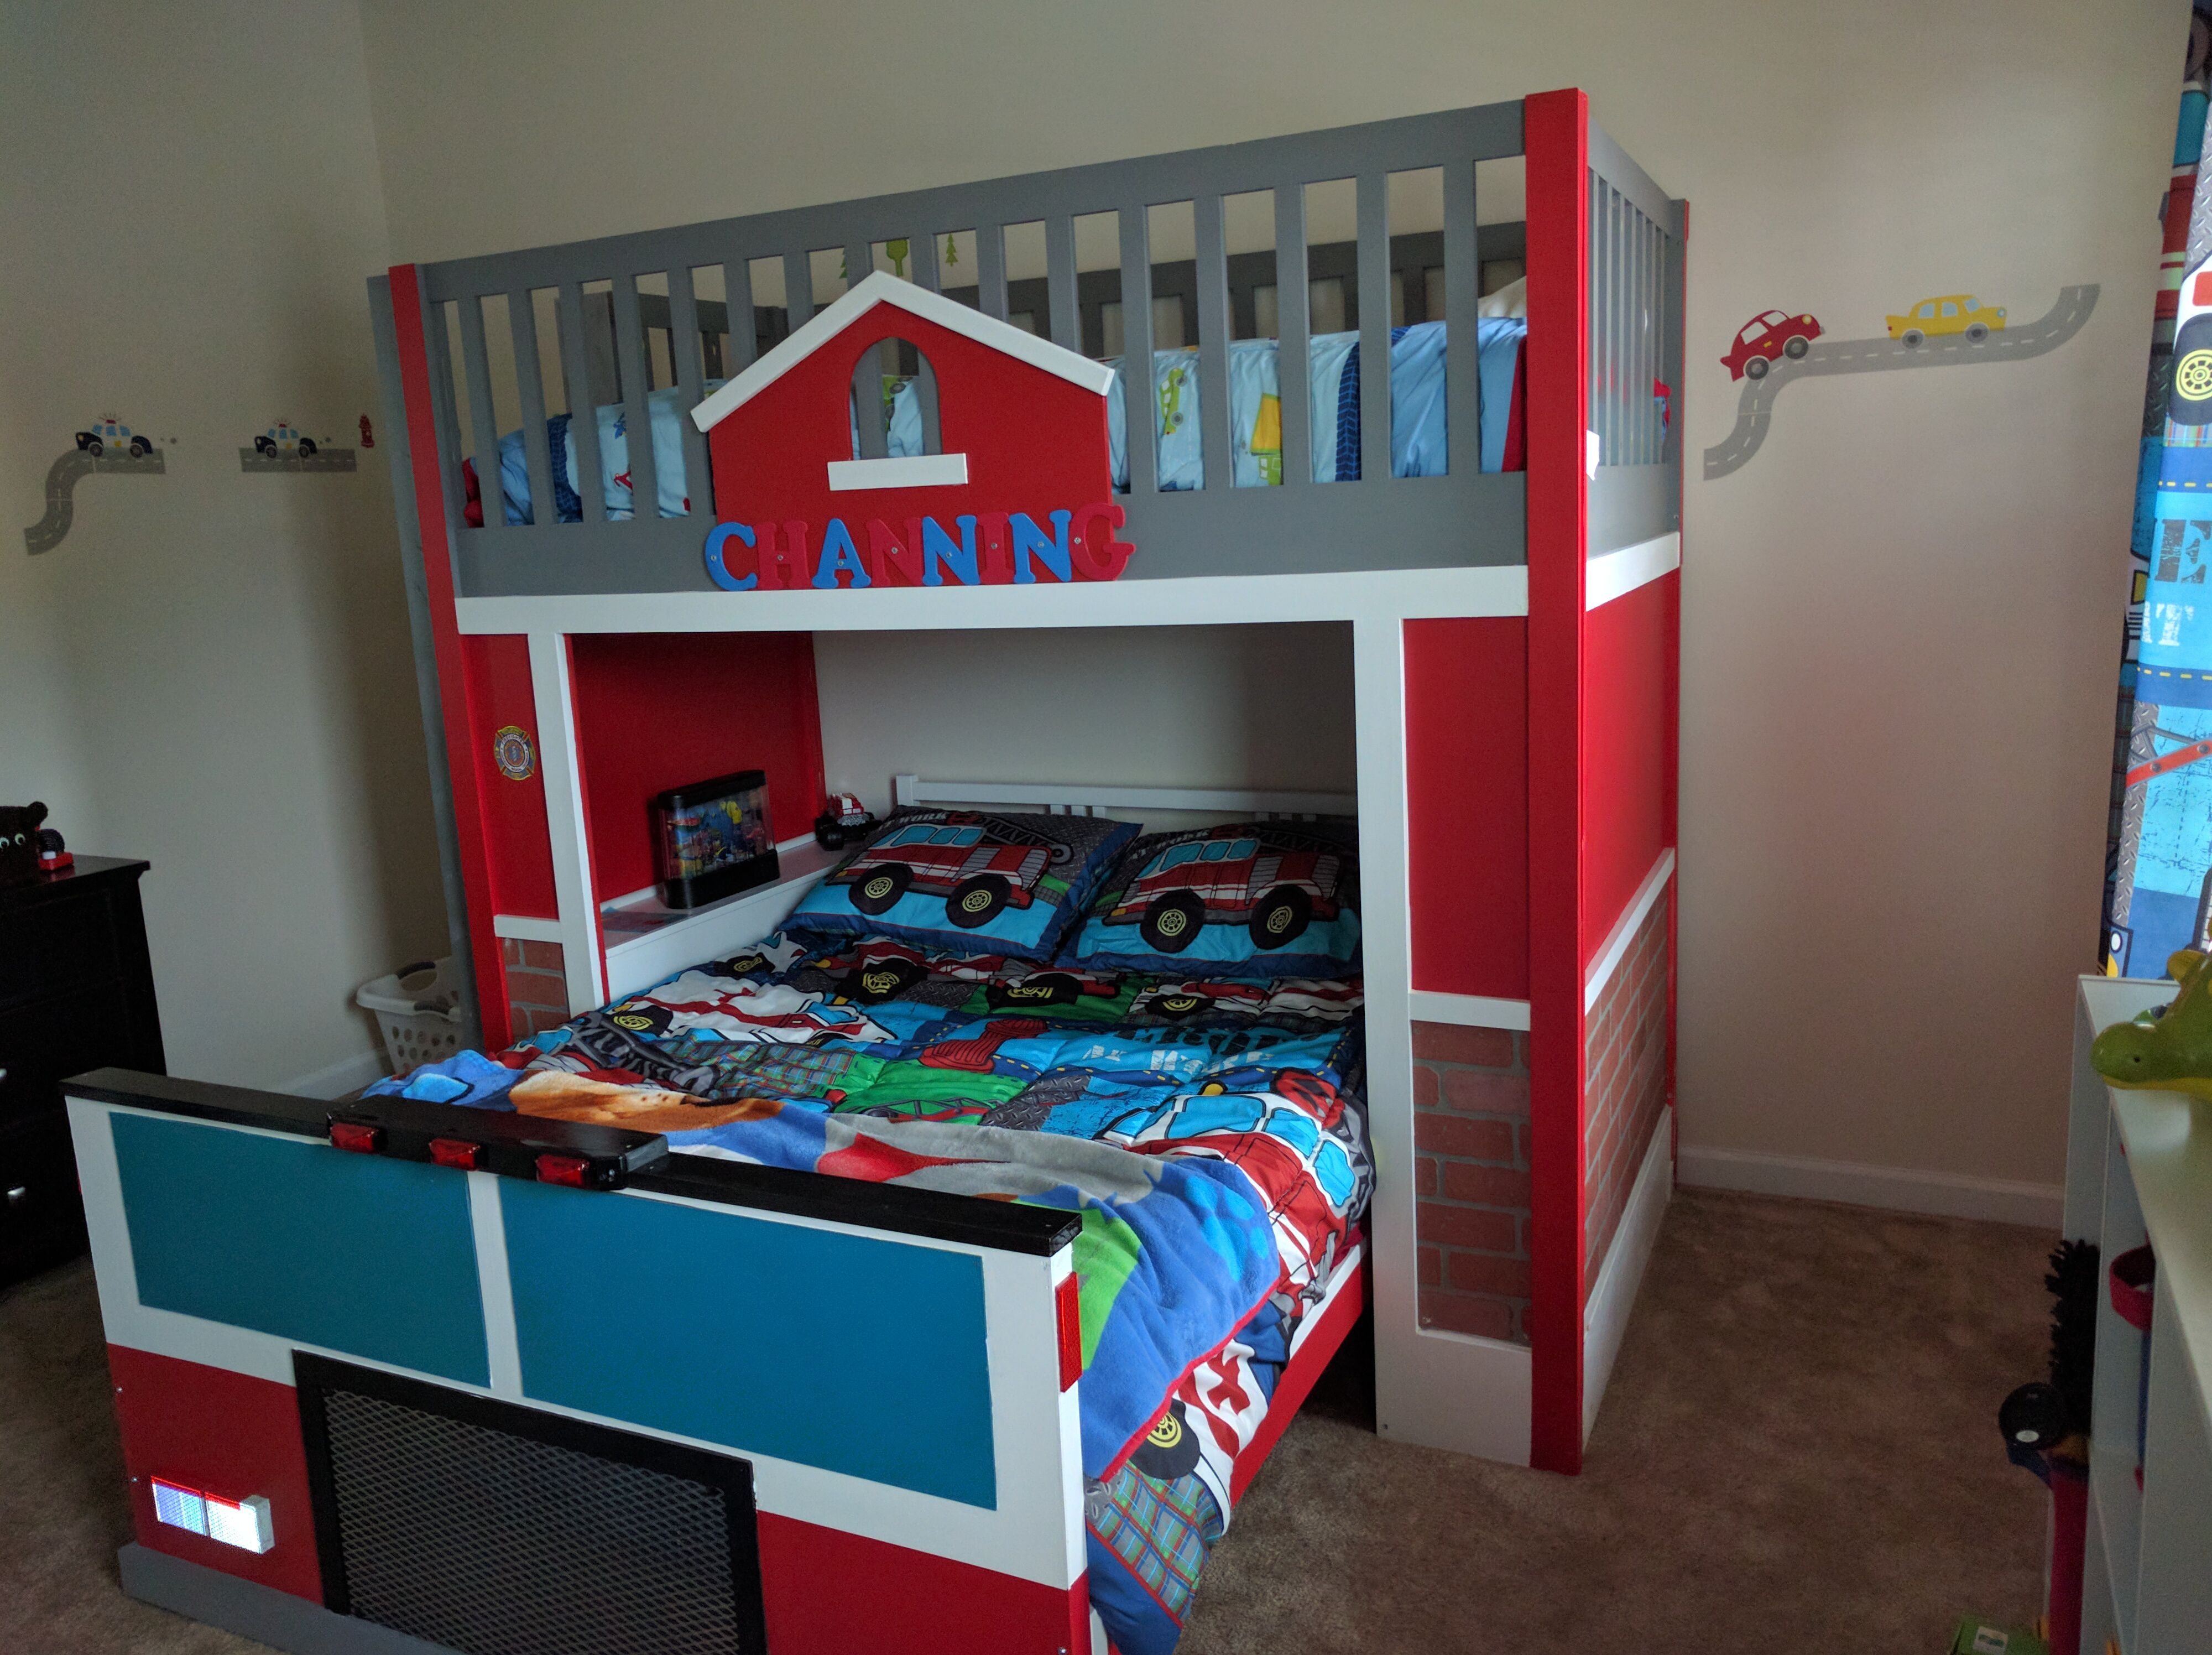 15 Free Diy Loft Bed Plans For Kids And Adults Pdf Cool Electronic Projects Download Computer Desk Blueprints A Firetruck